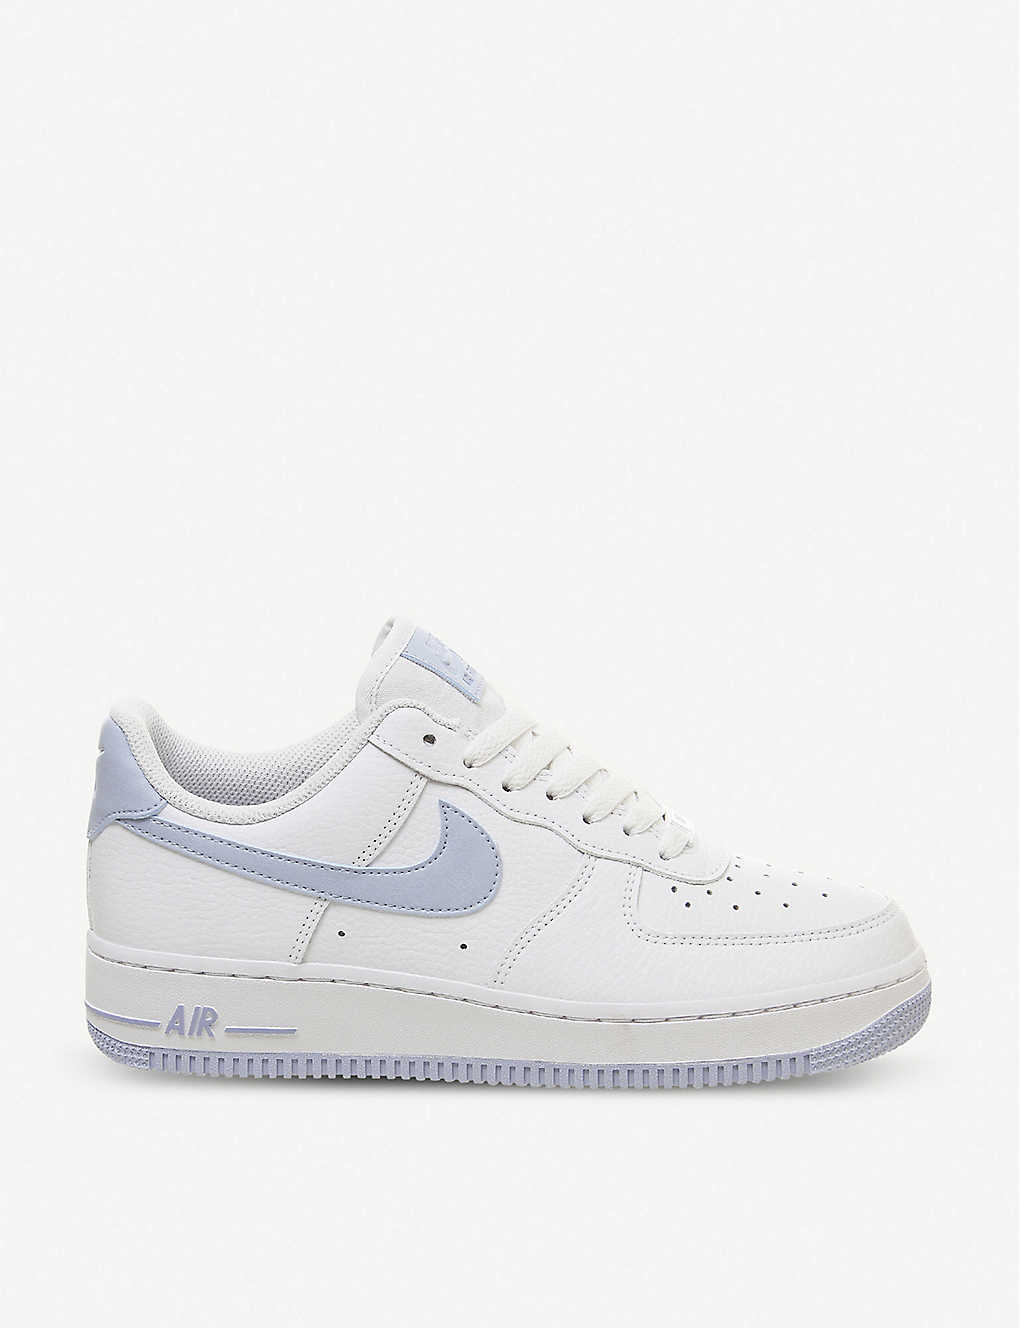 sneakers for cheap 61b46 f96ba Air Force 1 07 leather trainers - White light blue ...